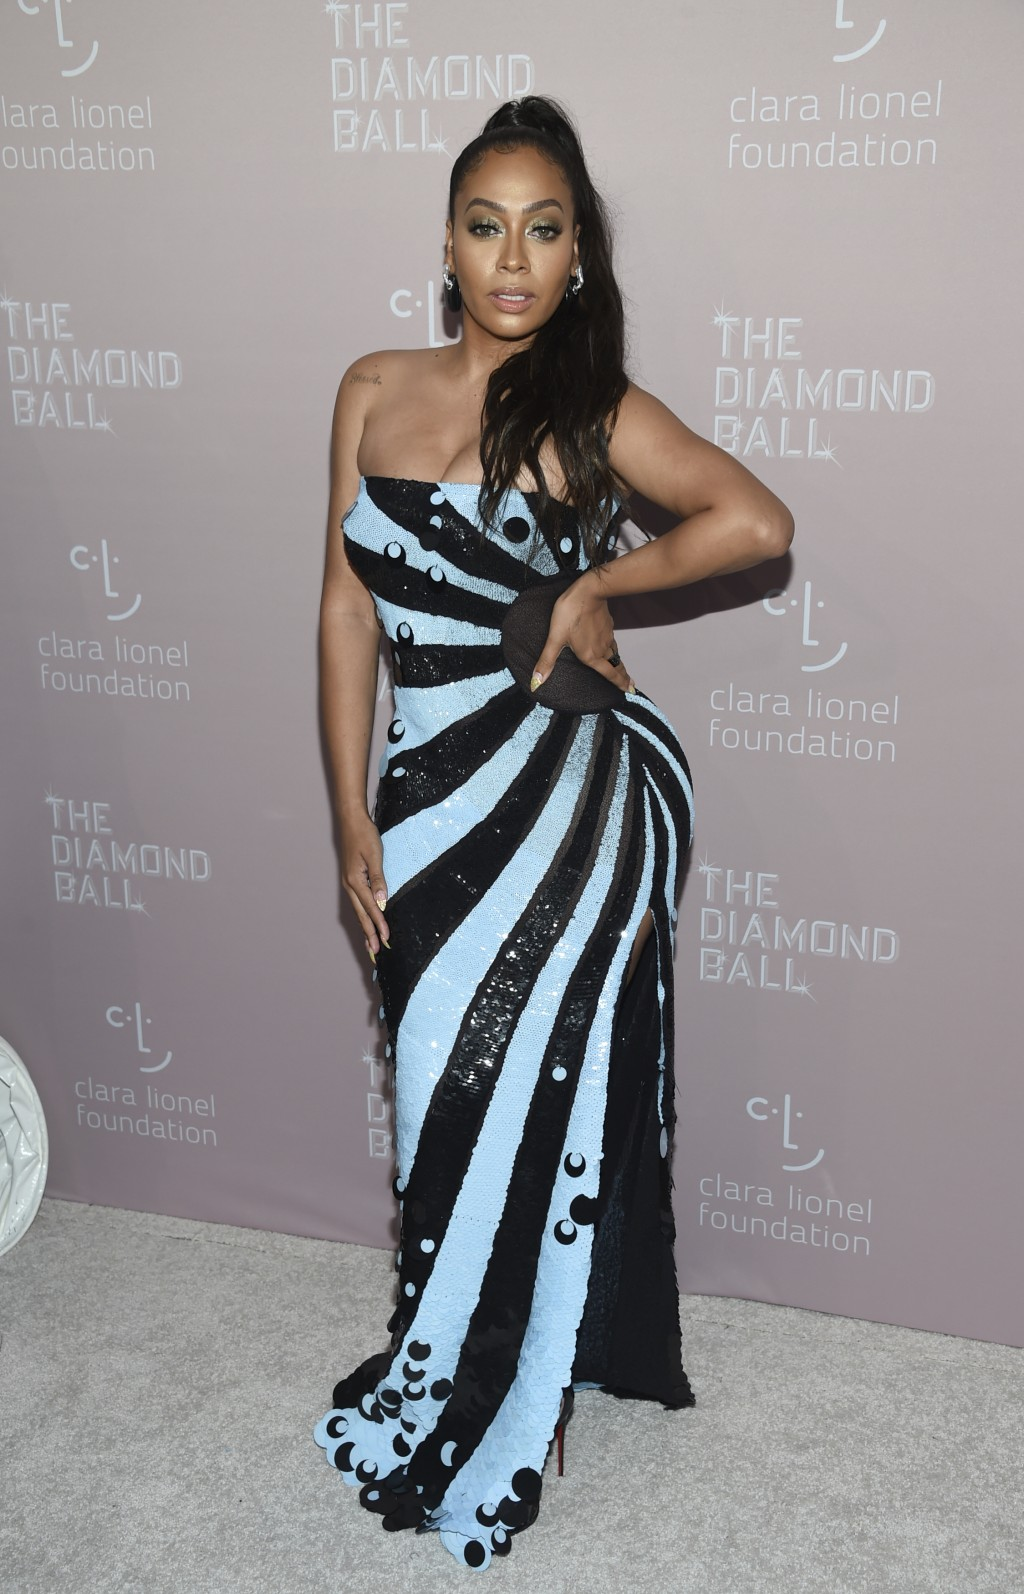 La La Anthony attends the 4th annual Diamond Ball at Cipriani Wall Street on Thursday, Sept. 13, 2018, in New York. (Photo by Evan Agostini/Invision/A